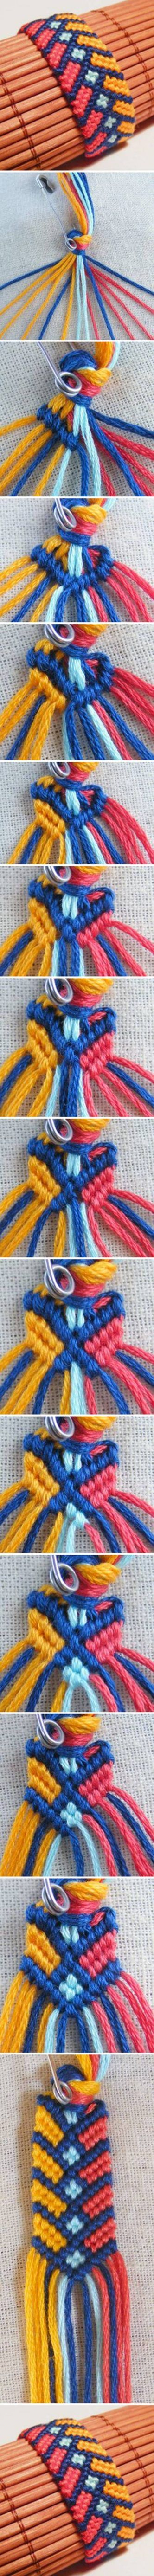 DIY Stylish Square Knot Macrame Bracelet